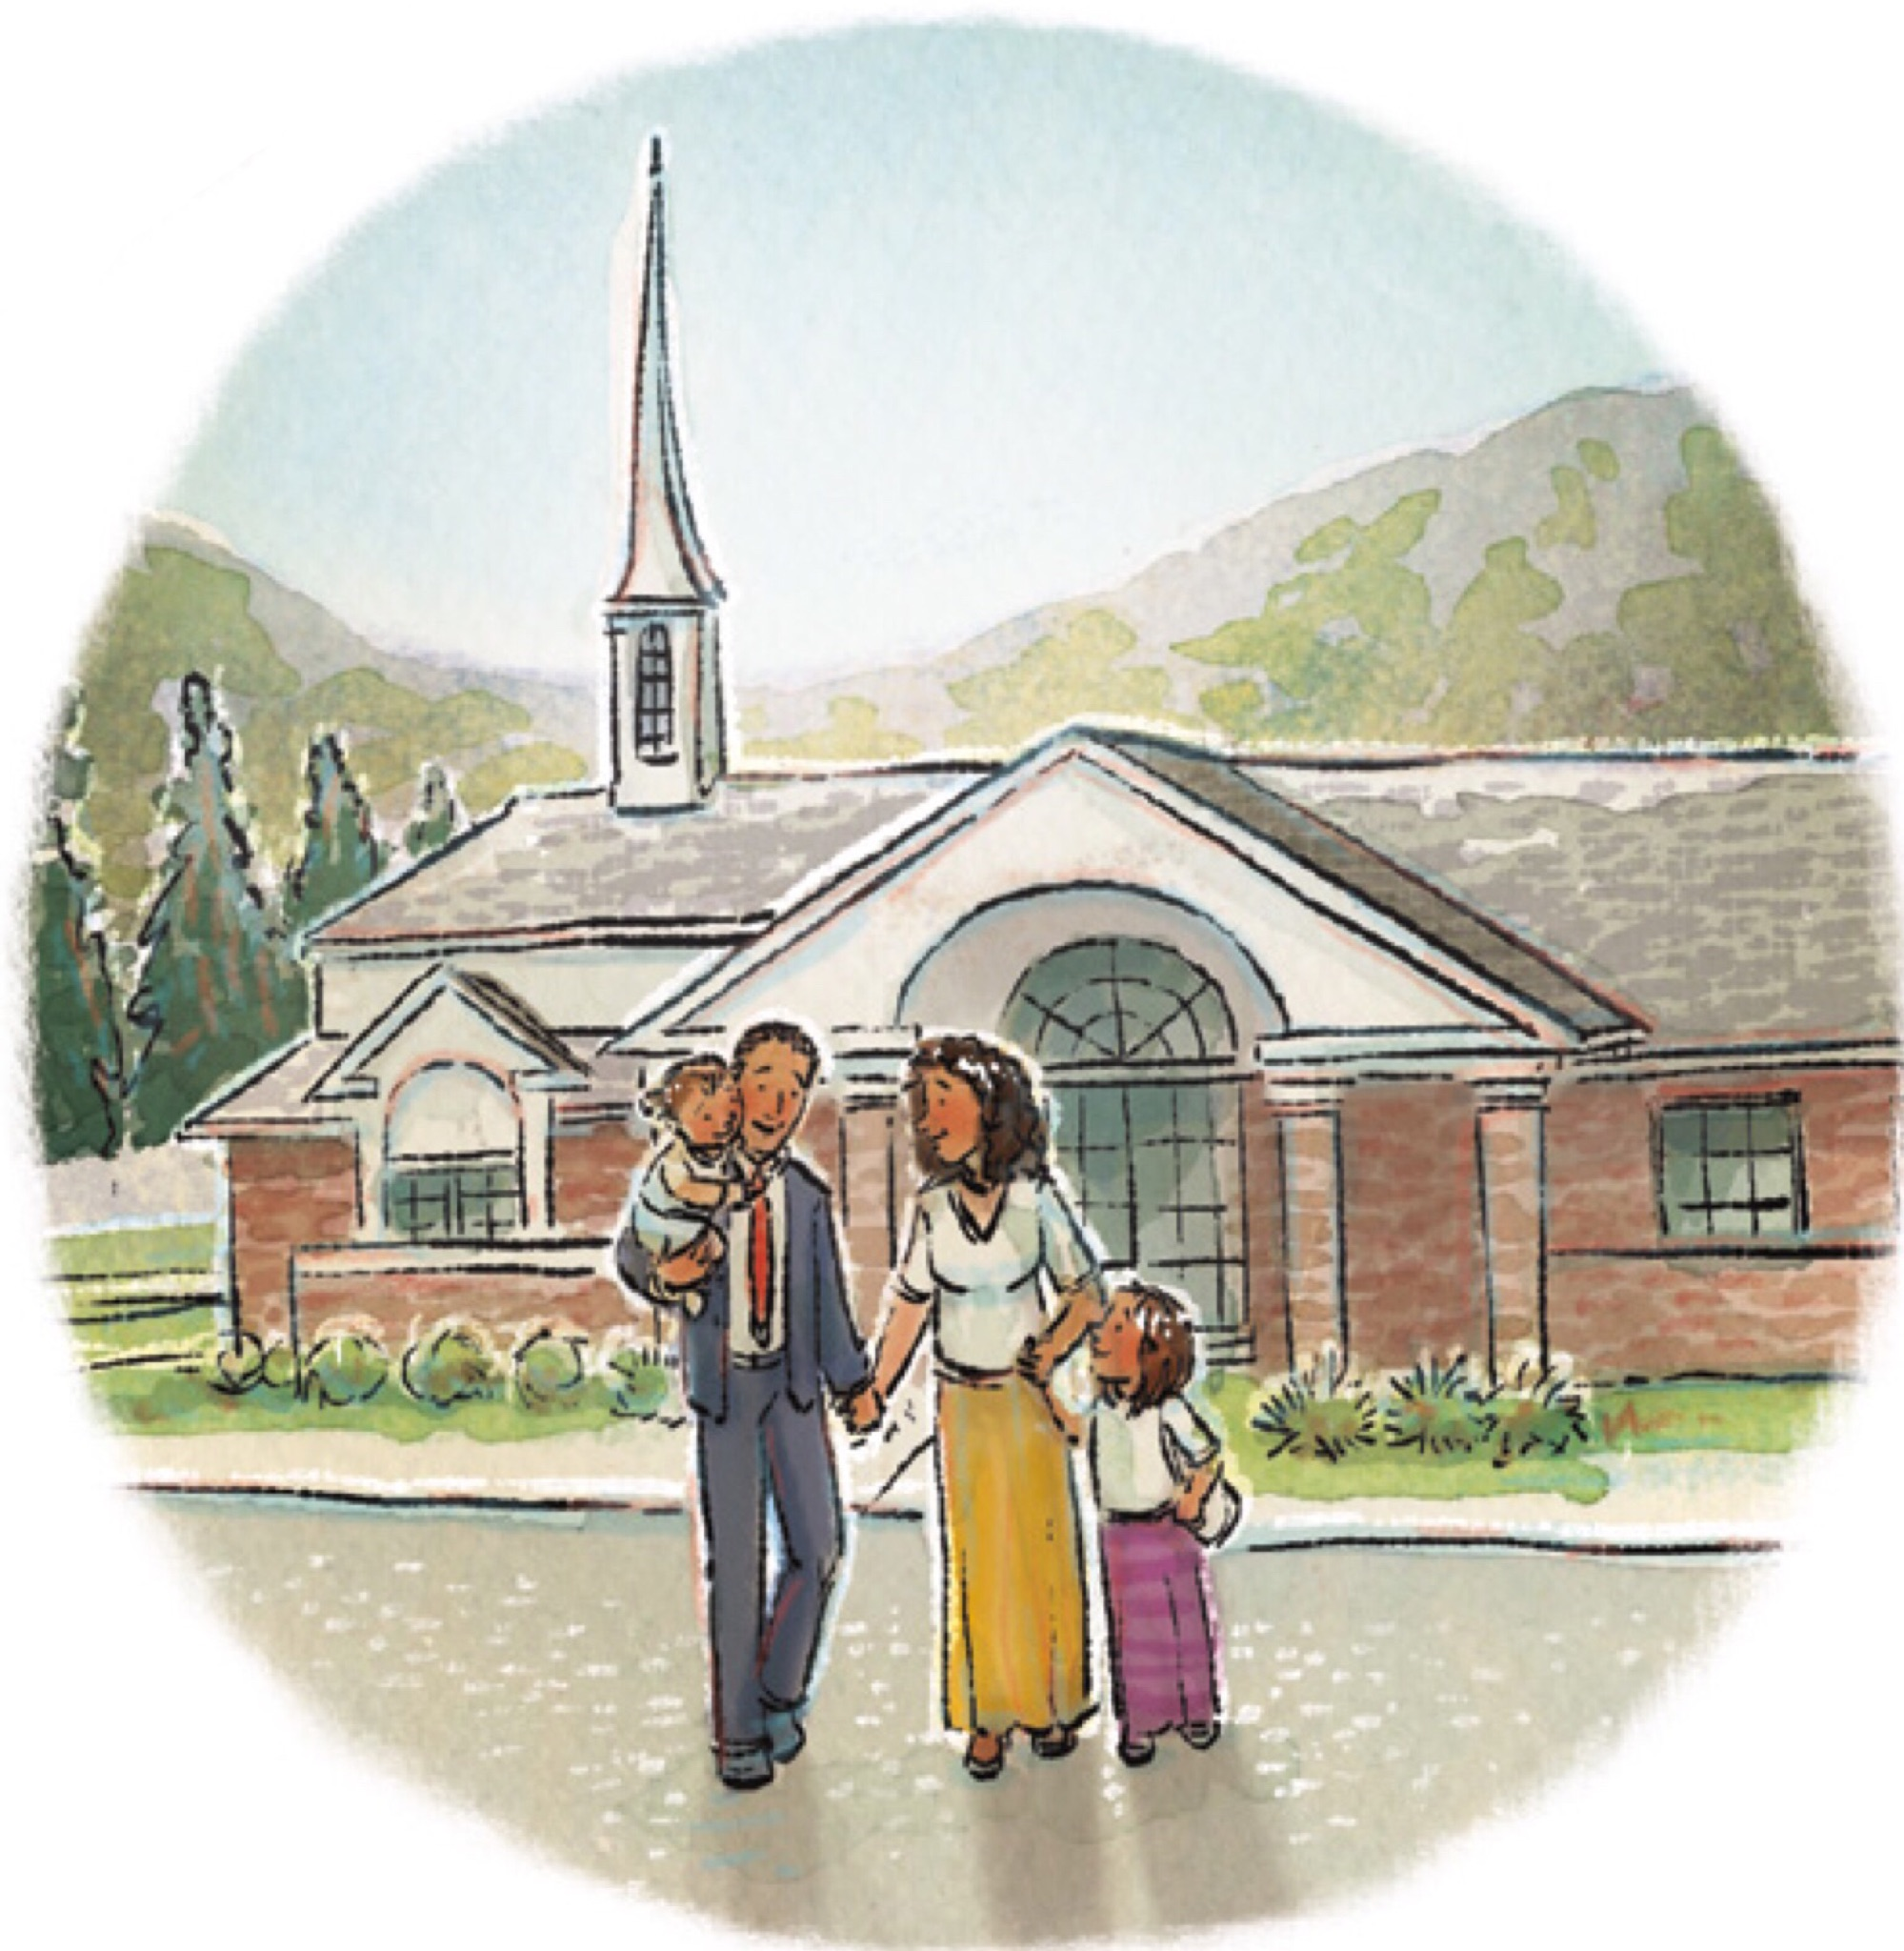 church clipart teaching lds children rh teachldschildren com LDS Clip Art Obedience Brings Blessings and Happiness lds clipart obey